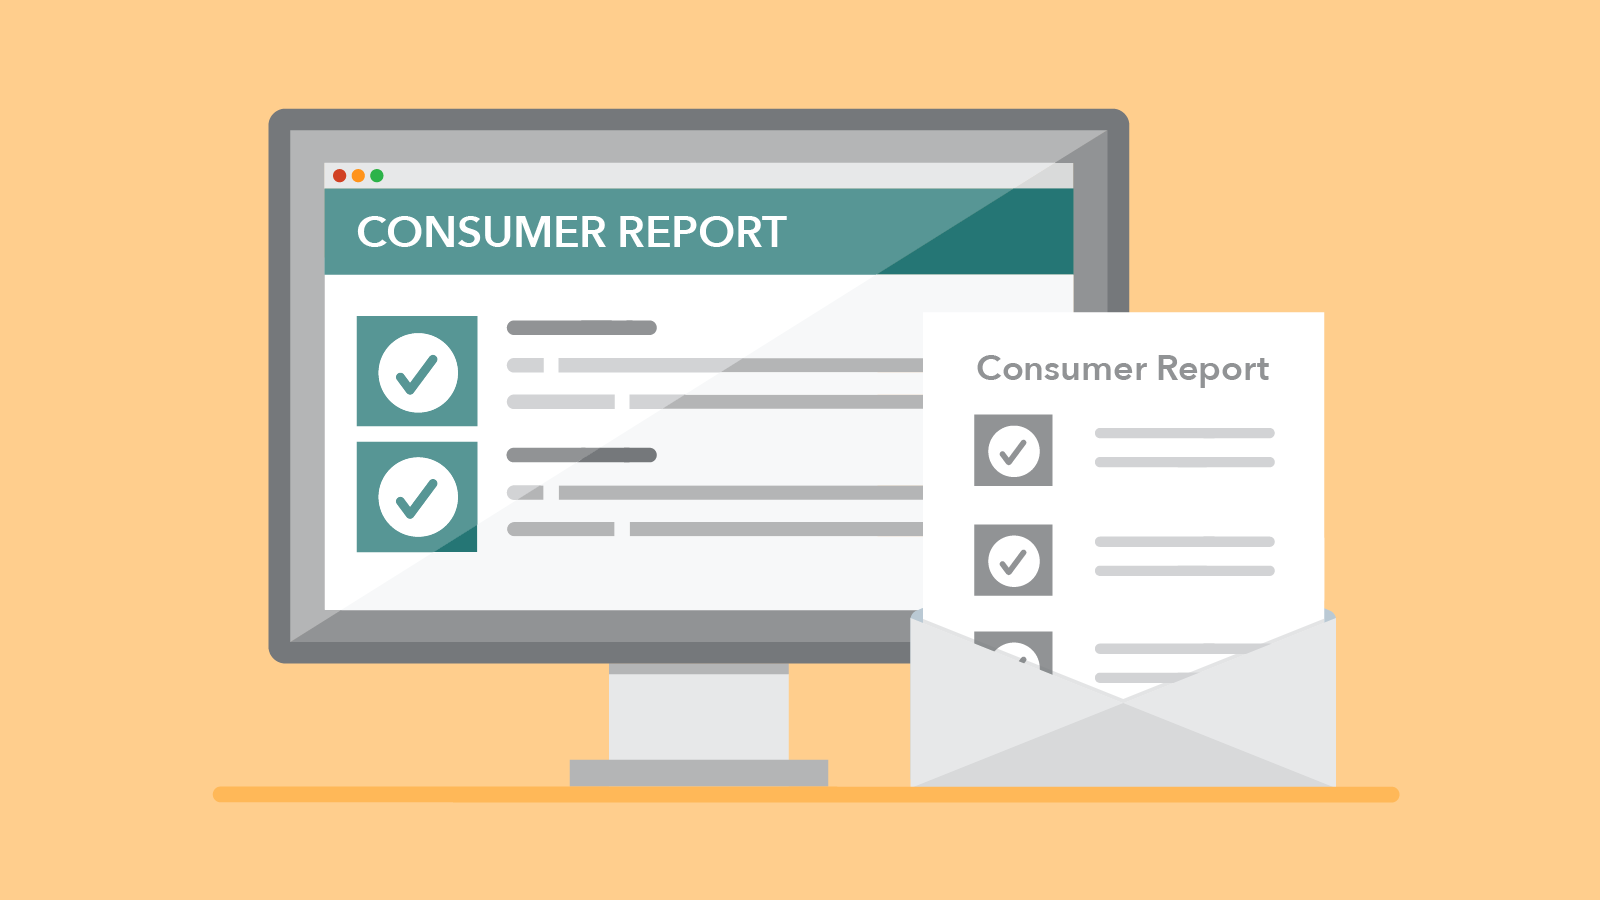 Know your data: Our latest list of consumer reporting companies